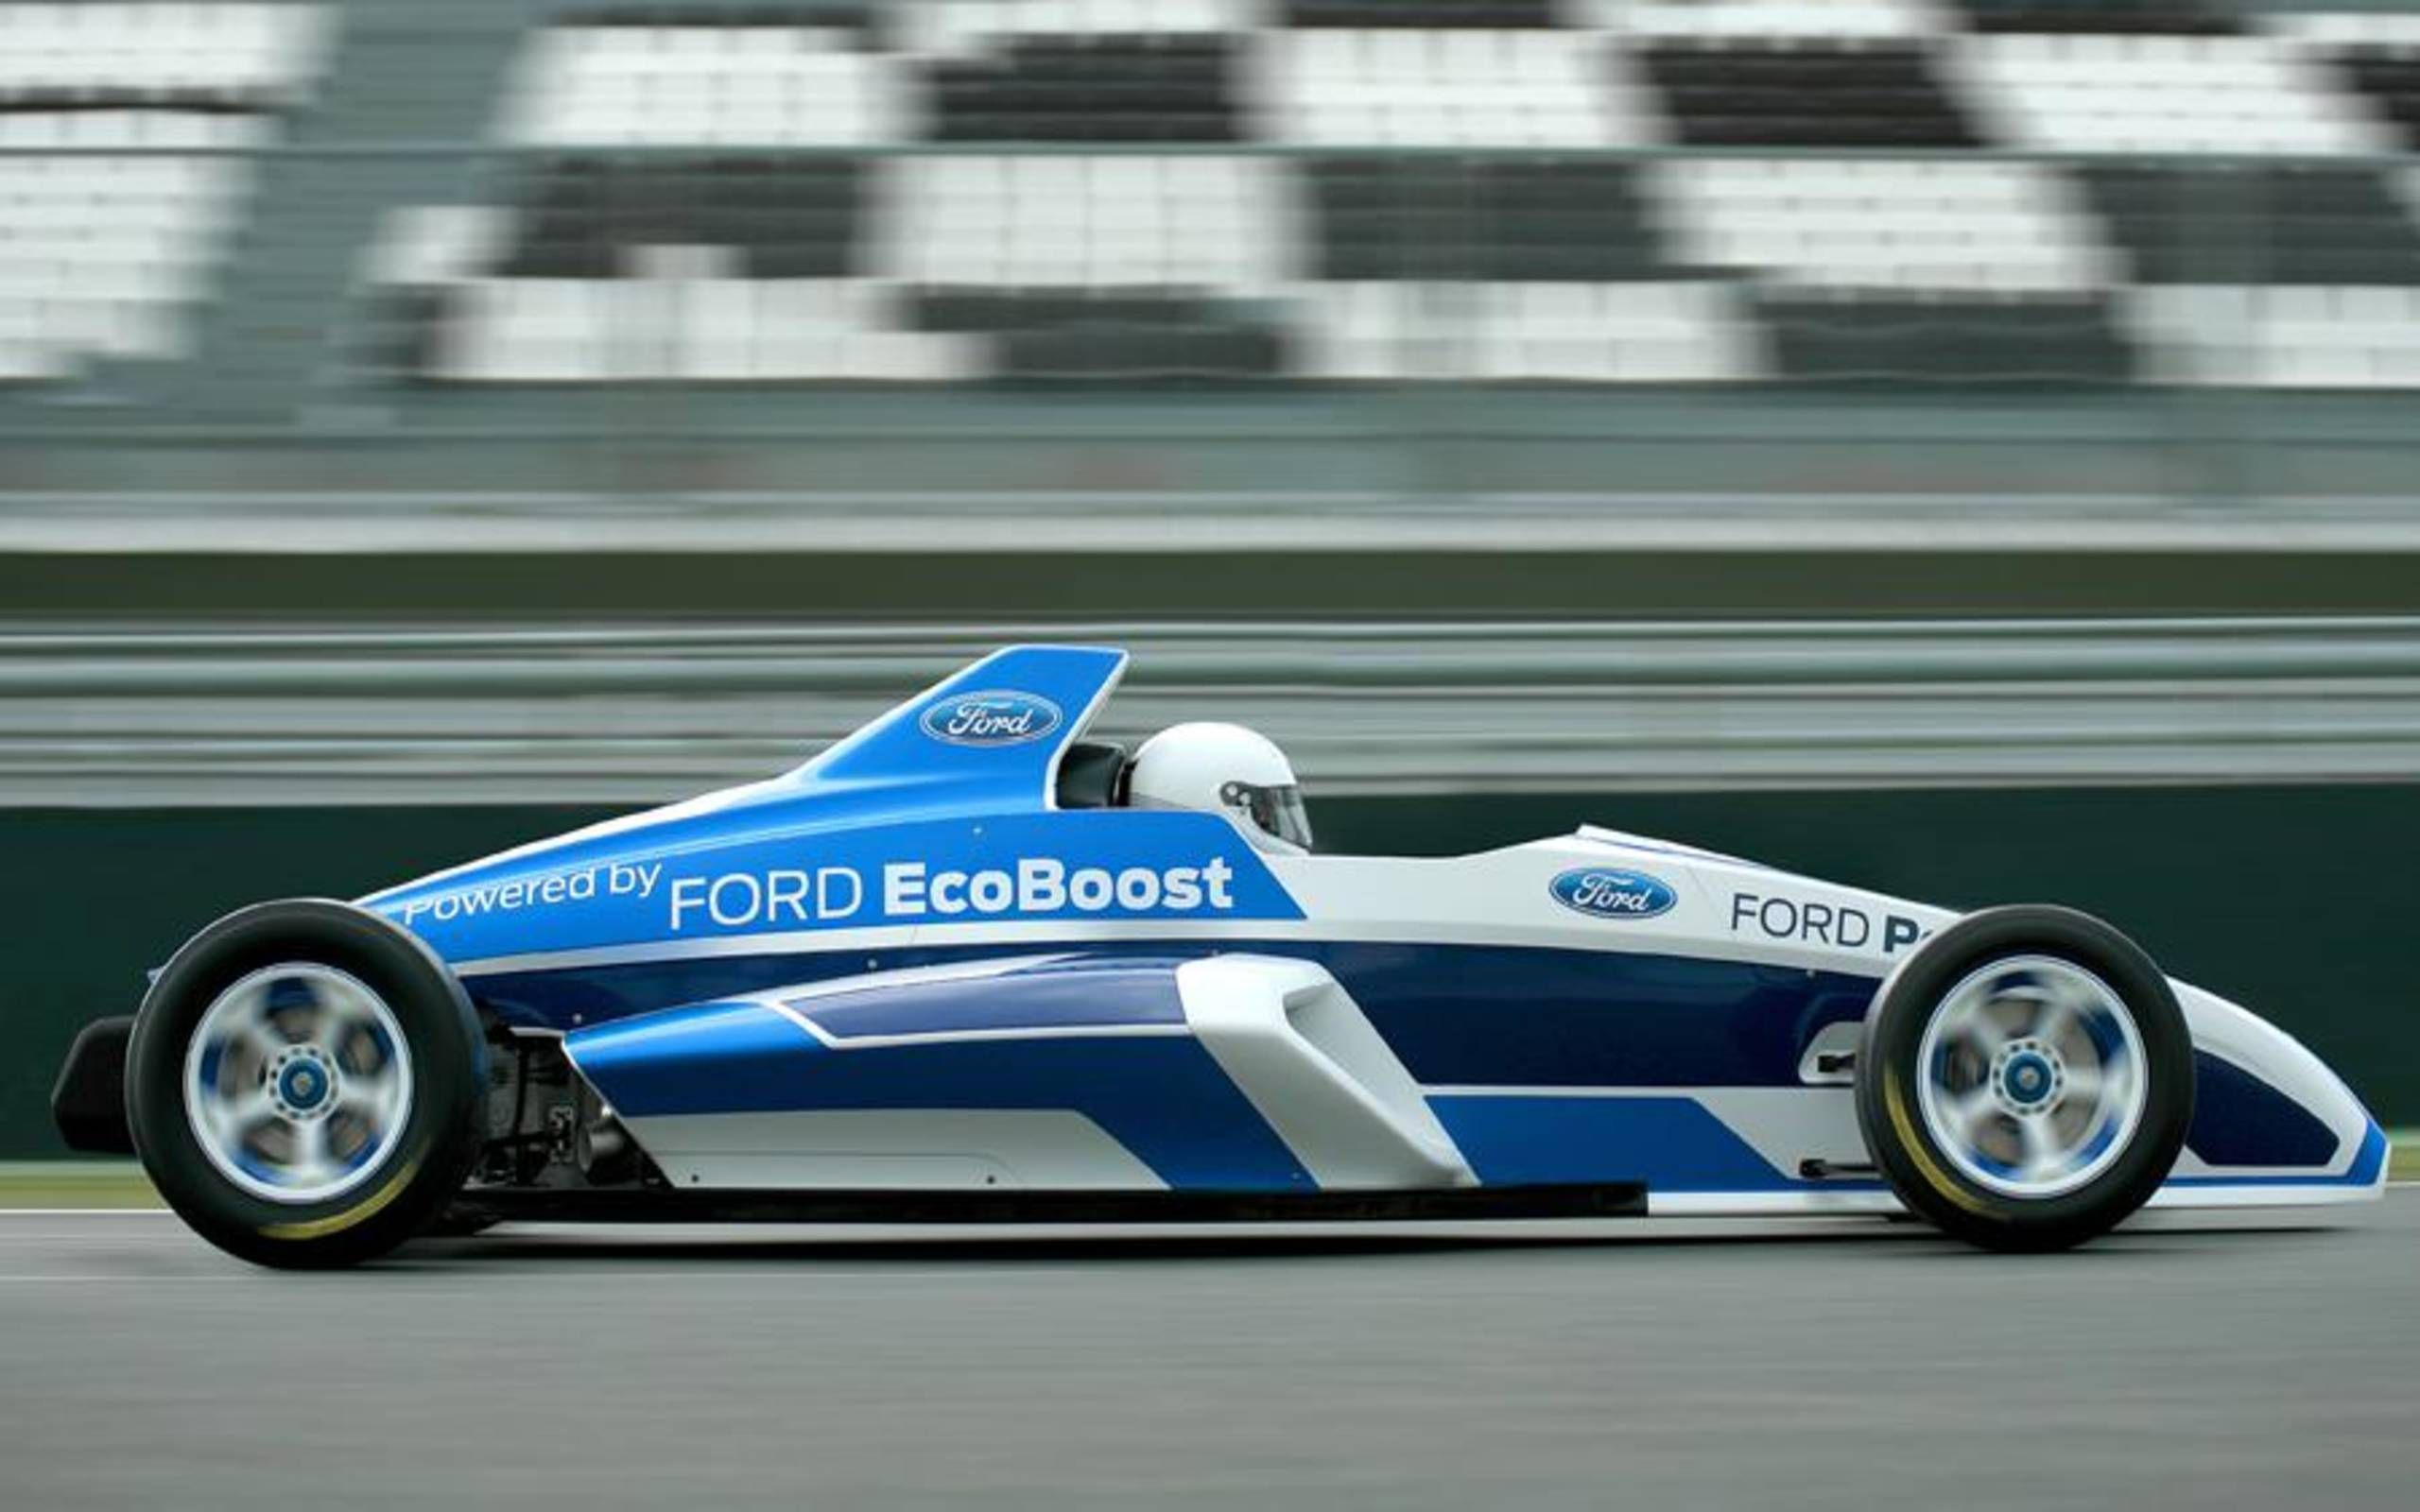 Ford Unveils New Formula Ford Race Car